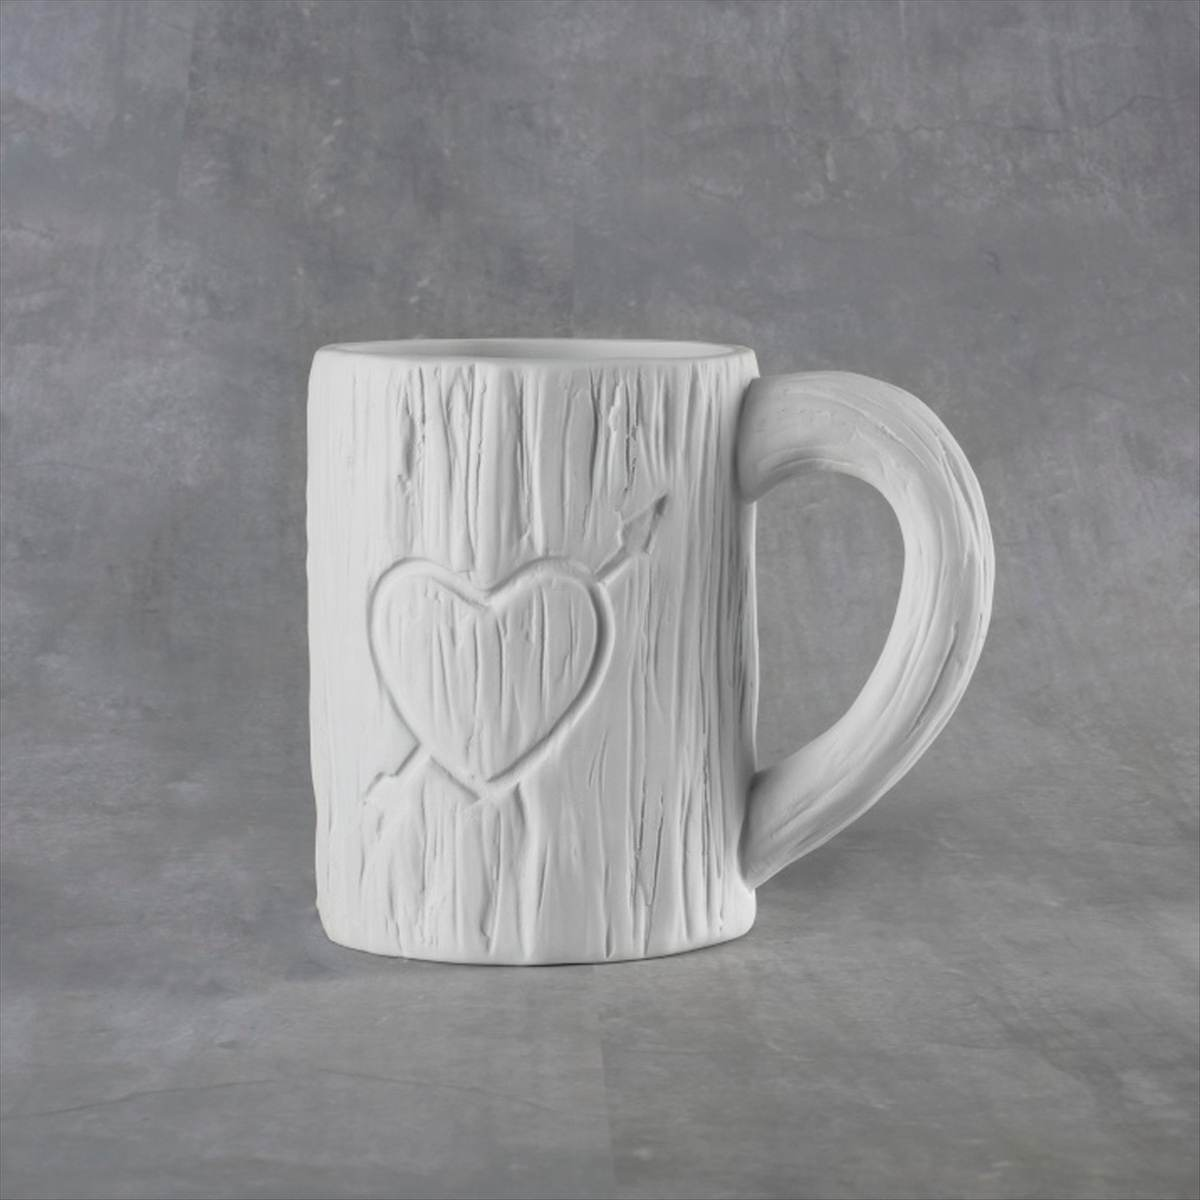 Duncan 38111 Bisque Tree Carved Heart Mug 12 oz